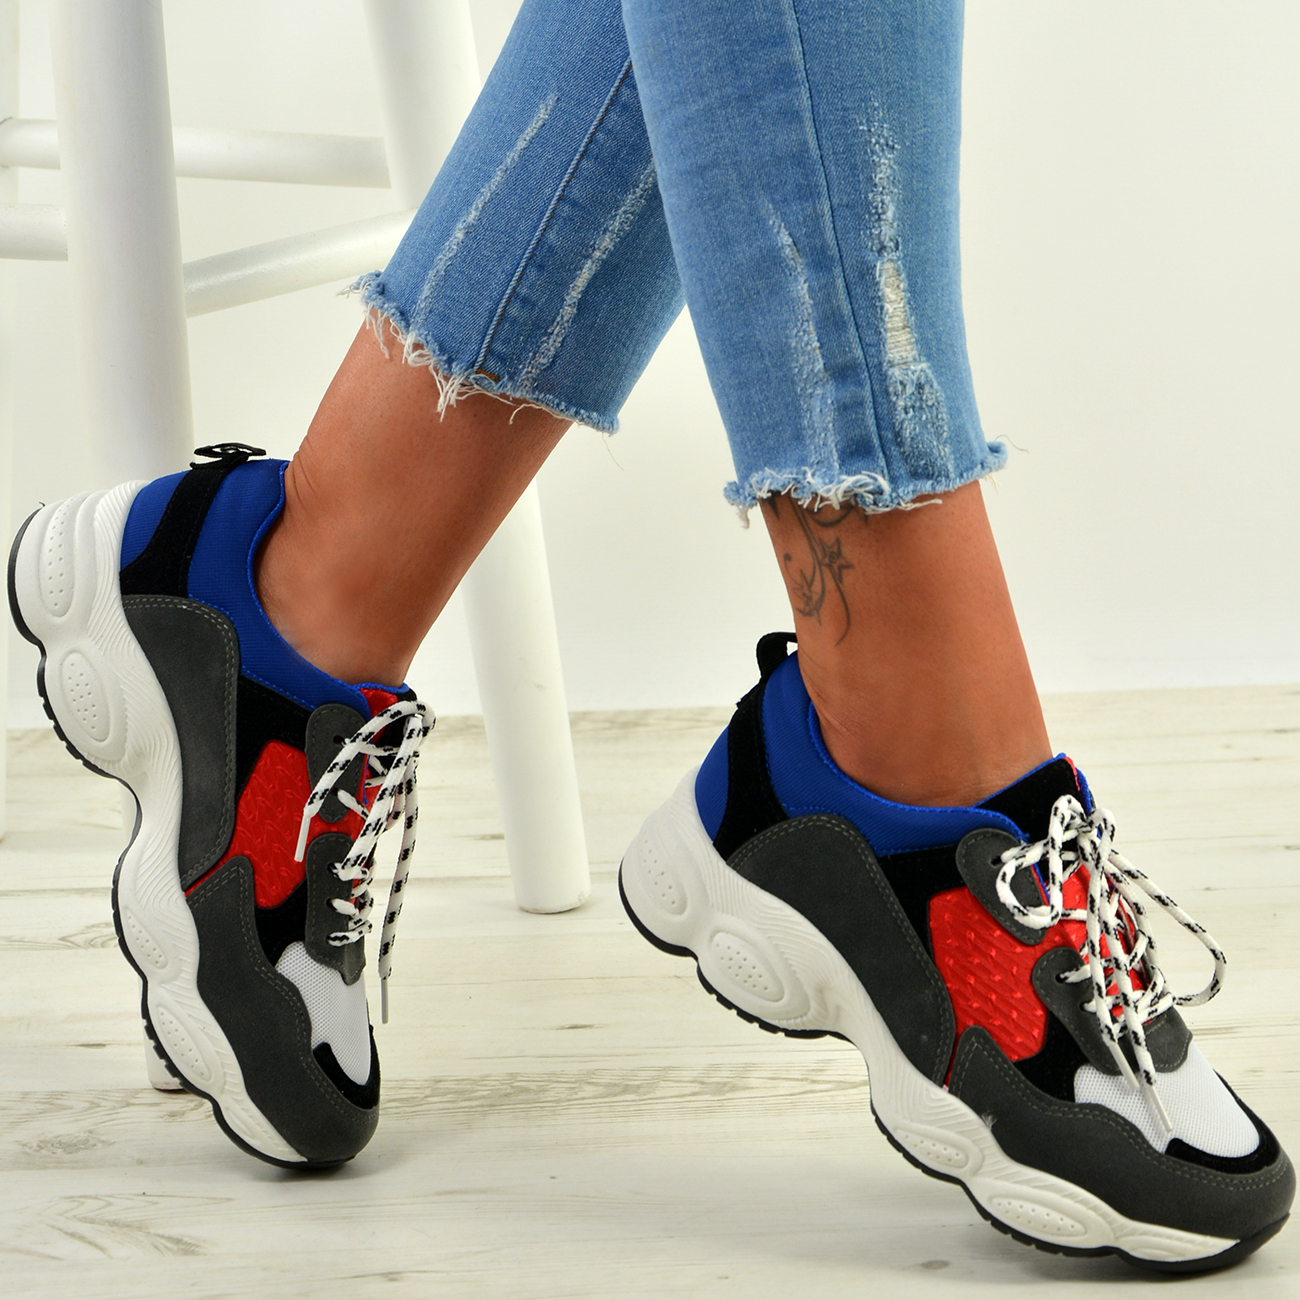 WOMENS-LADIES-RUNNING-GYM-CHUNKY-TRAINERS-SNEAKERS-SHOES-SIZE miniatura 14